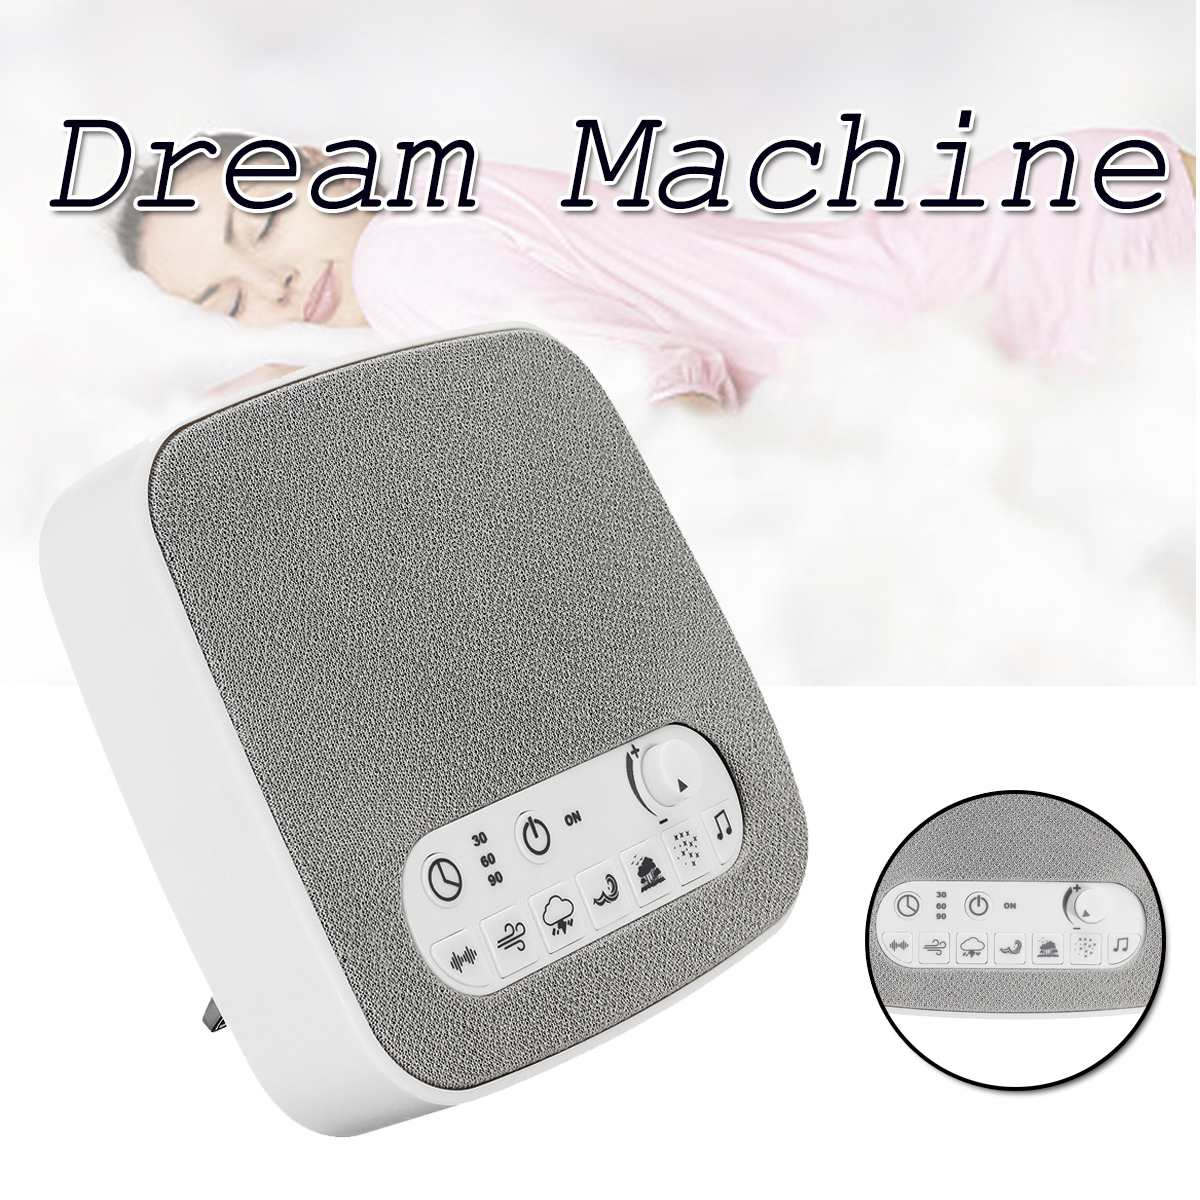 Baby Sleeping Monitor Sleep White Noise Machine Soothers Sound Record Voice Sensor with 7 Soothing Sound Auto off TimerBaby Sleeping Monitor Sleep White Noise Machine Soothers Sound Record Voice Sensor with 7 Soothing Sound Auto off Timer